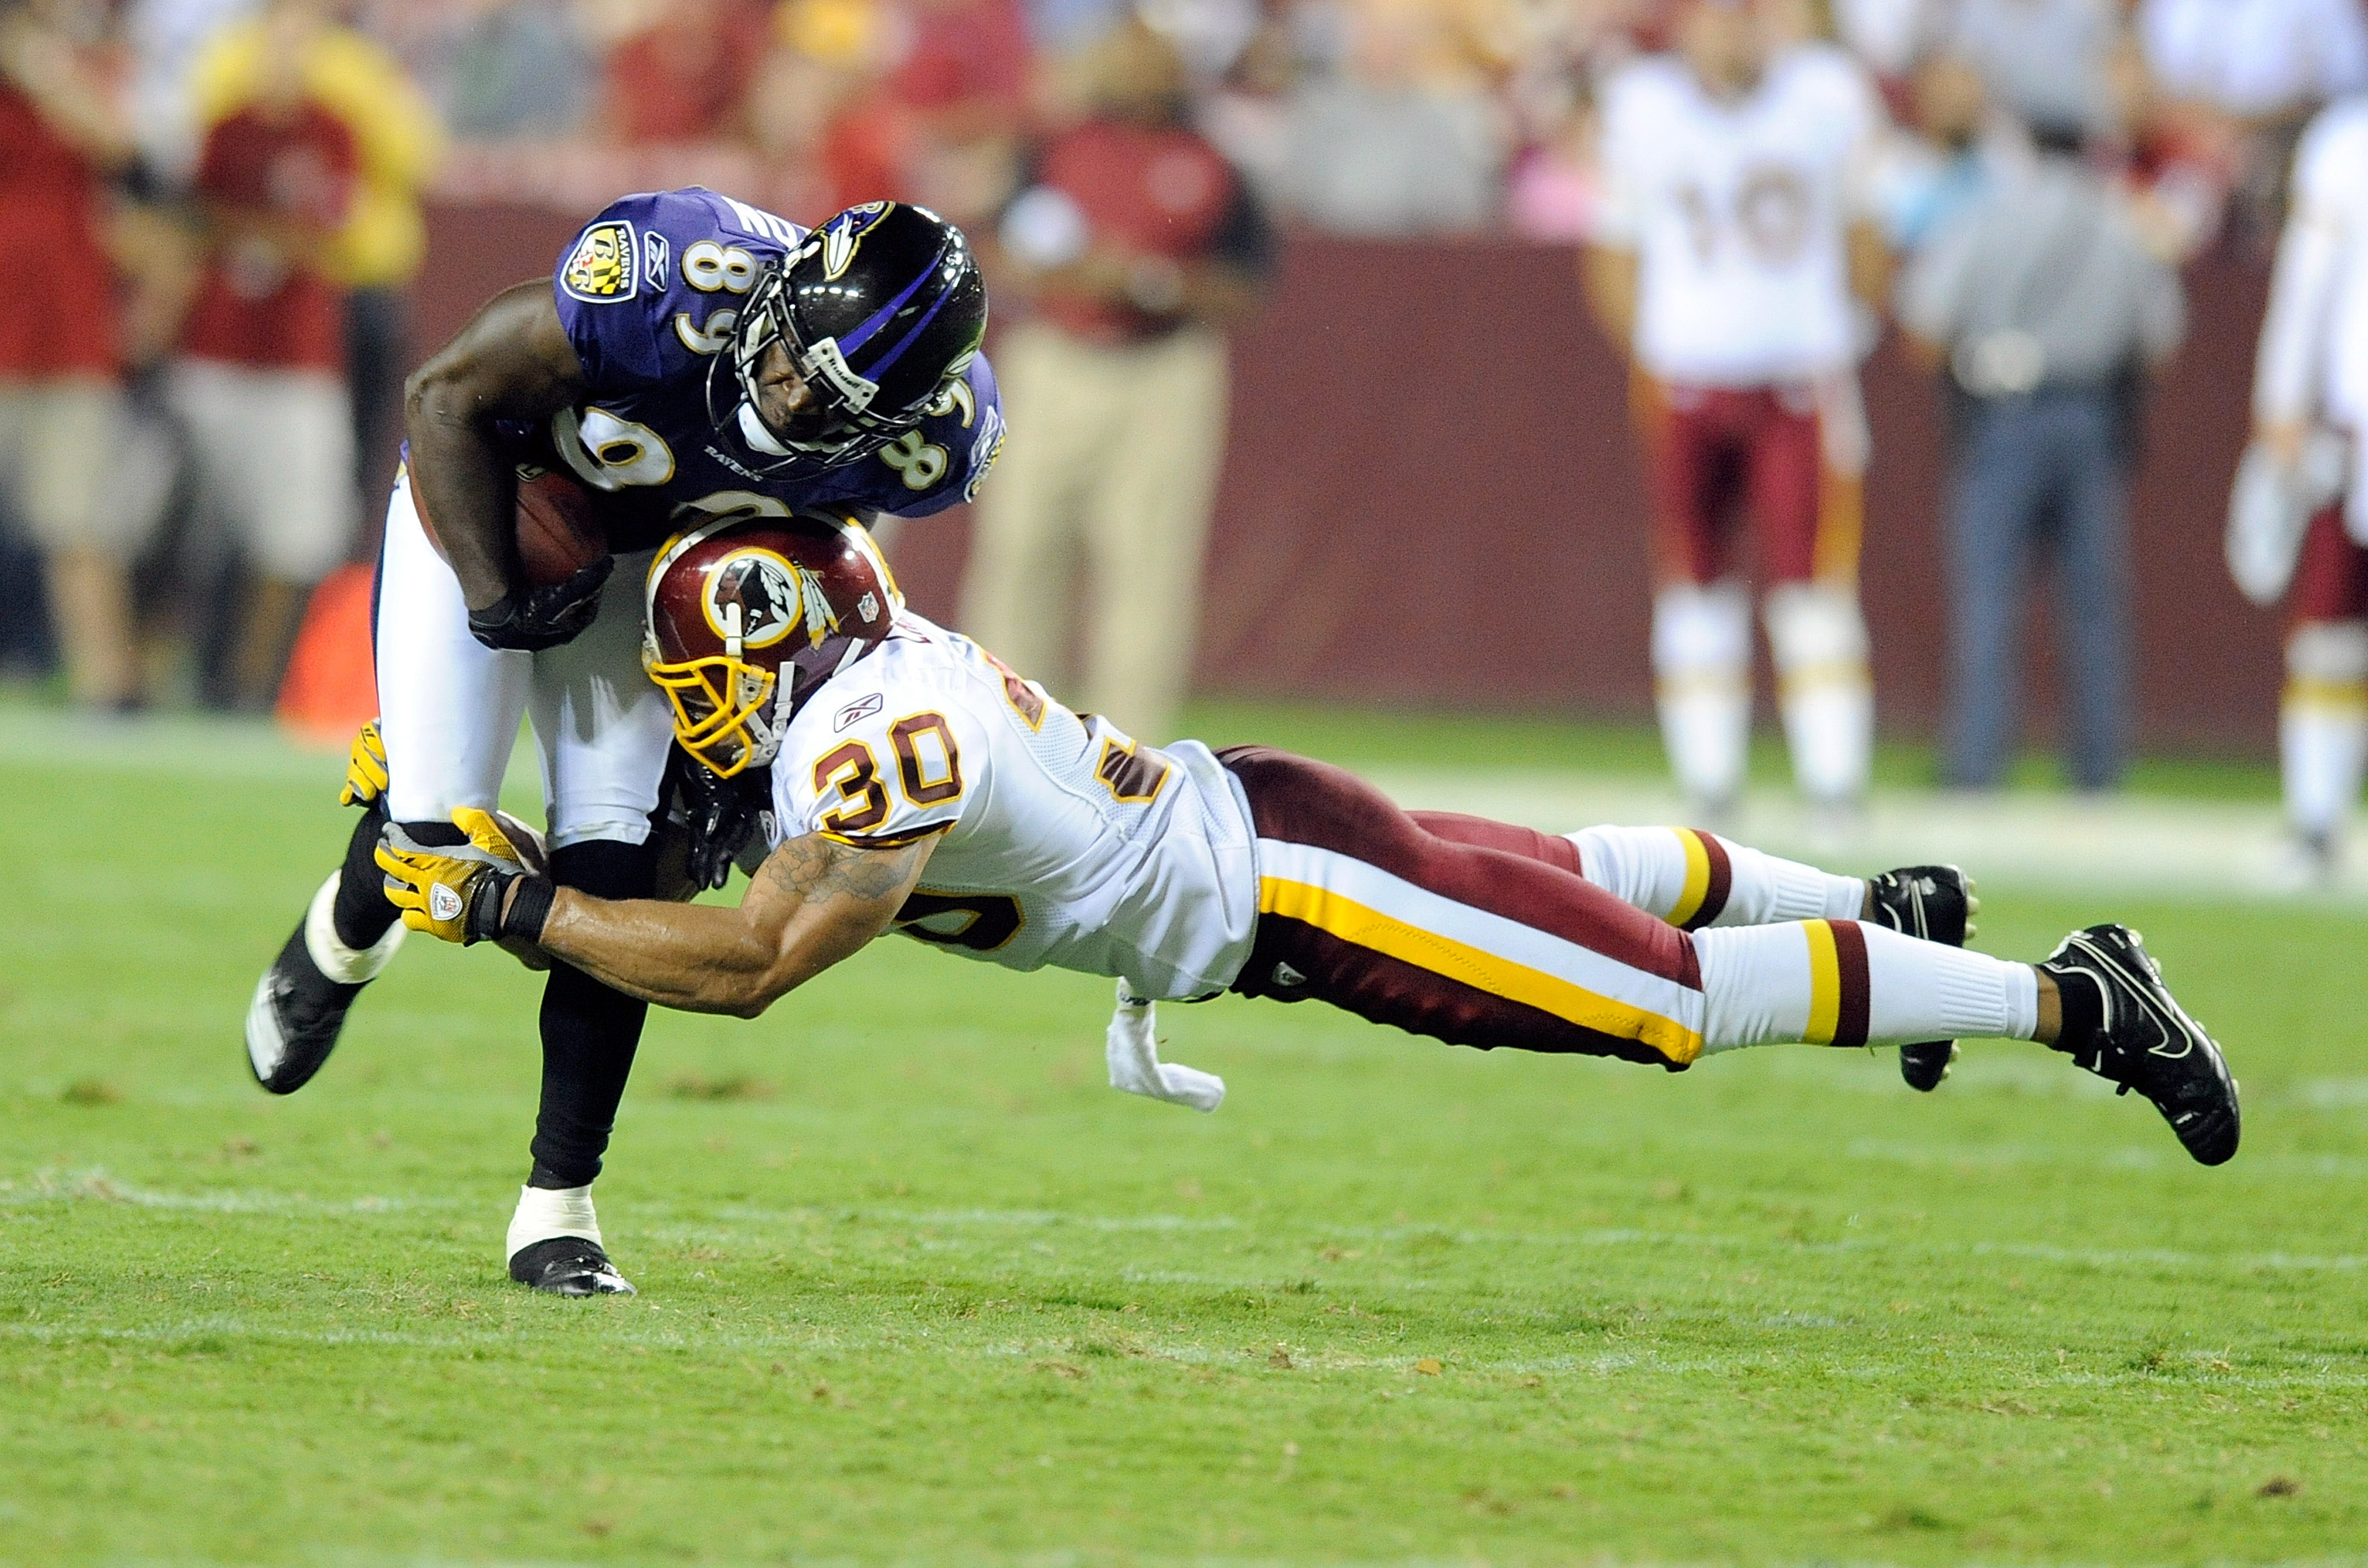 LANDOVER, MD - AUGUST 21:  Mark Clayton #89 of the Baltimore Ravens is tackled during the preseason game by LaRon Landry #30 of the Washington Redskins at FedExField on August 21, 2010 in Landover, Maryland.  (Photo by Greg Fiume/Getty Images)